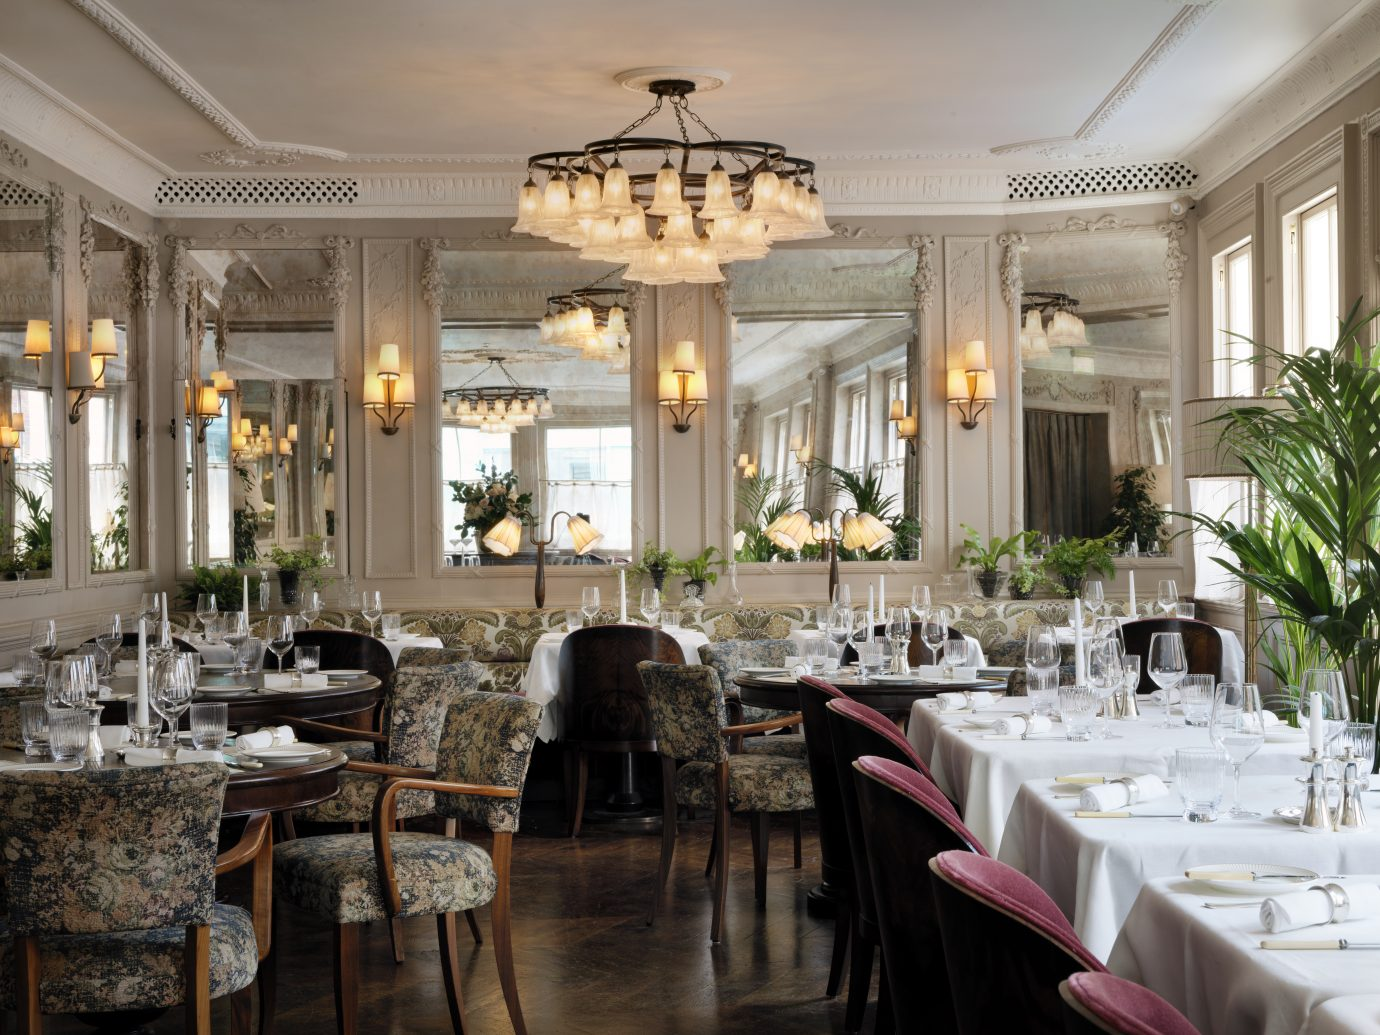 Restaurant at Kettner's Townhouse